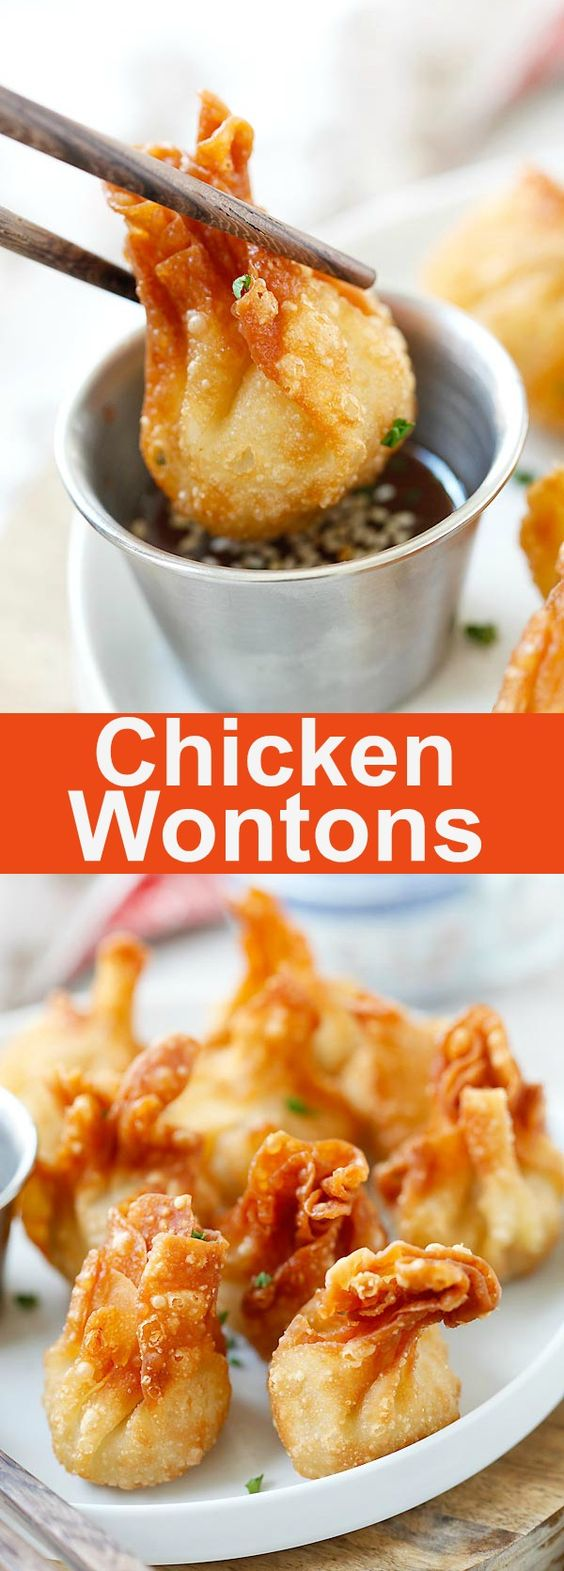 Chicken wontons, Wontons and Fried chicken on Pinterest